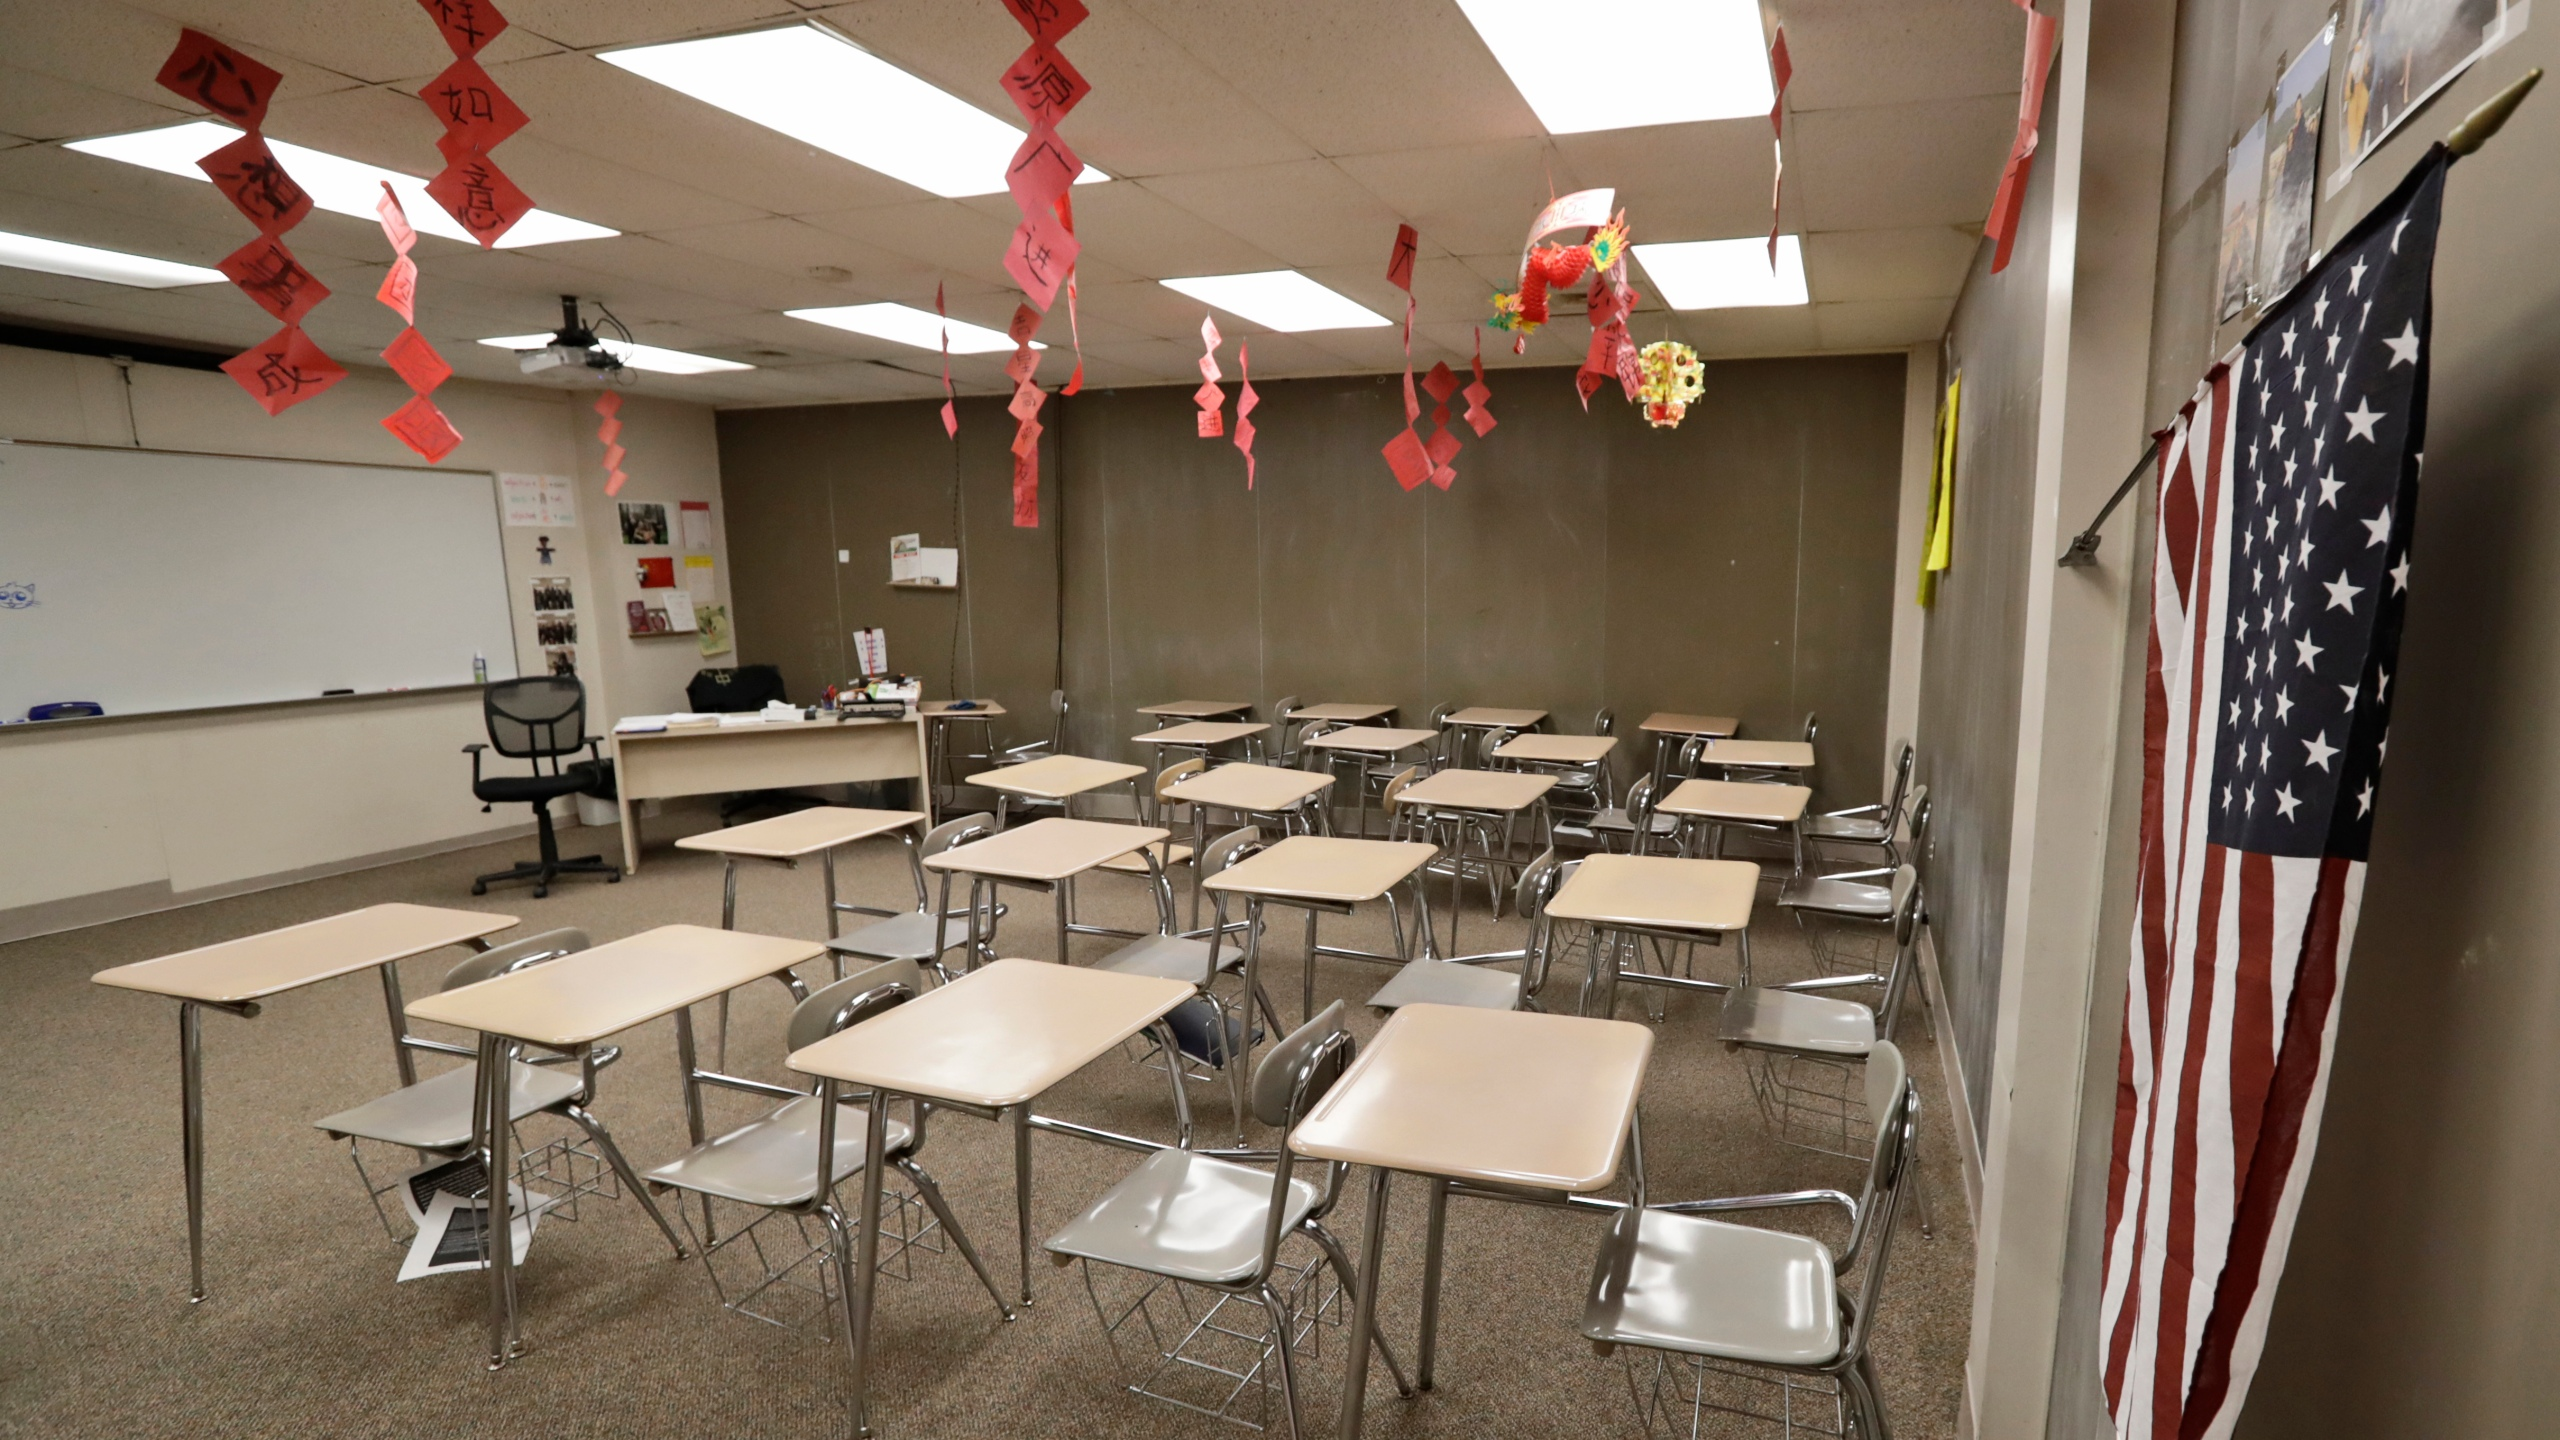 The empty world language room is shown at Orange High School, Thursday, March 12, 2020, in Pepper Pike, Ohio. Gov. Mike DeWine ordered all schools closed for three weeks beginning Monday.